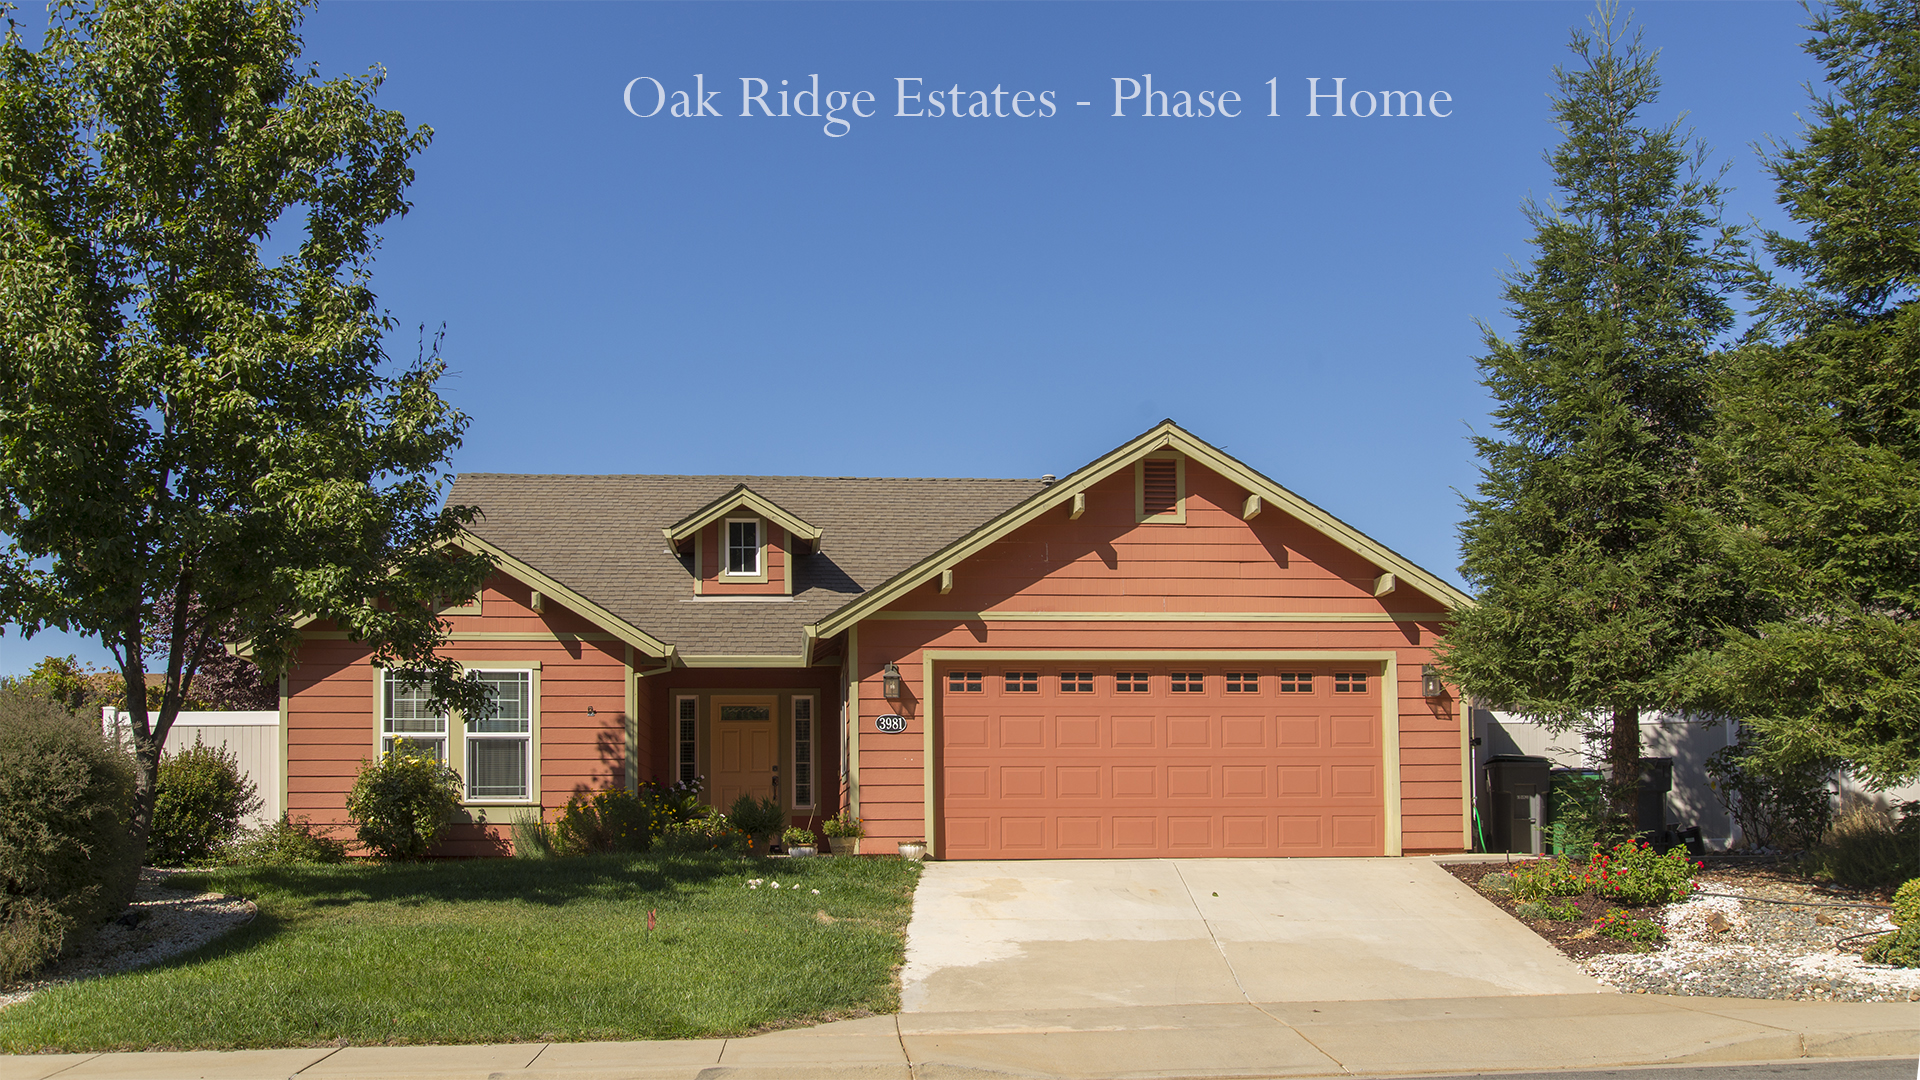 Oakridge Phase I Home 1